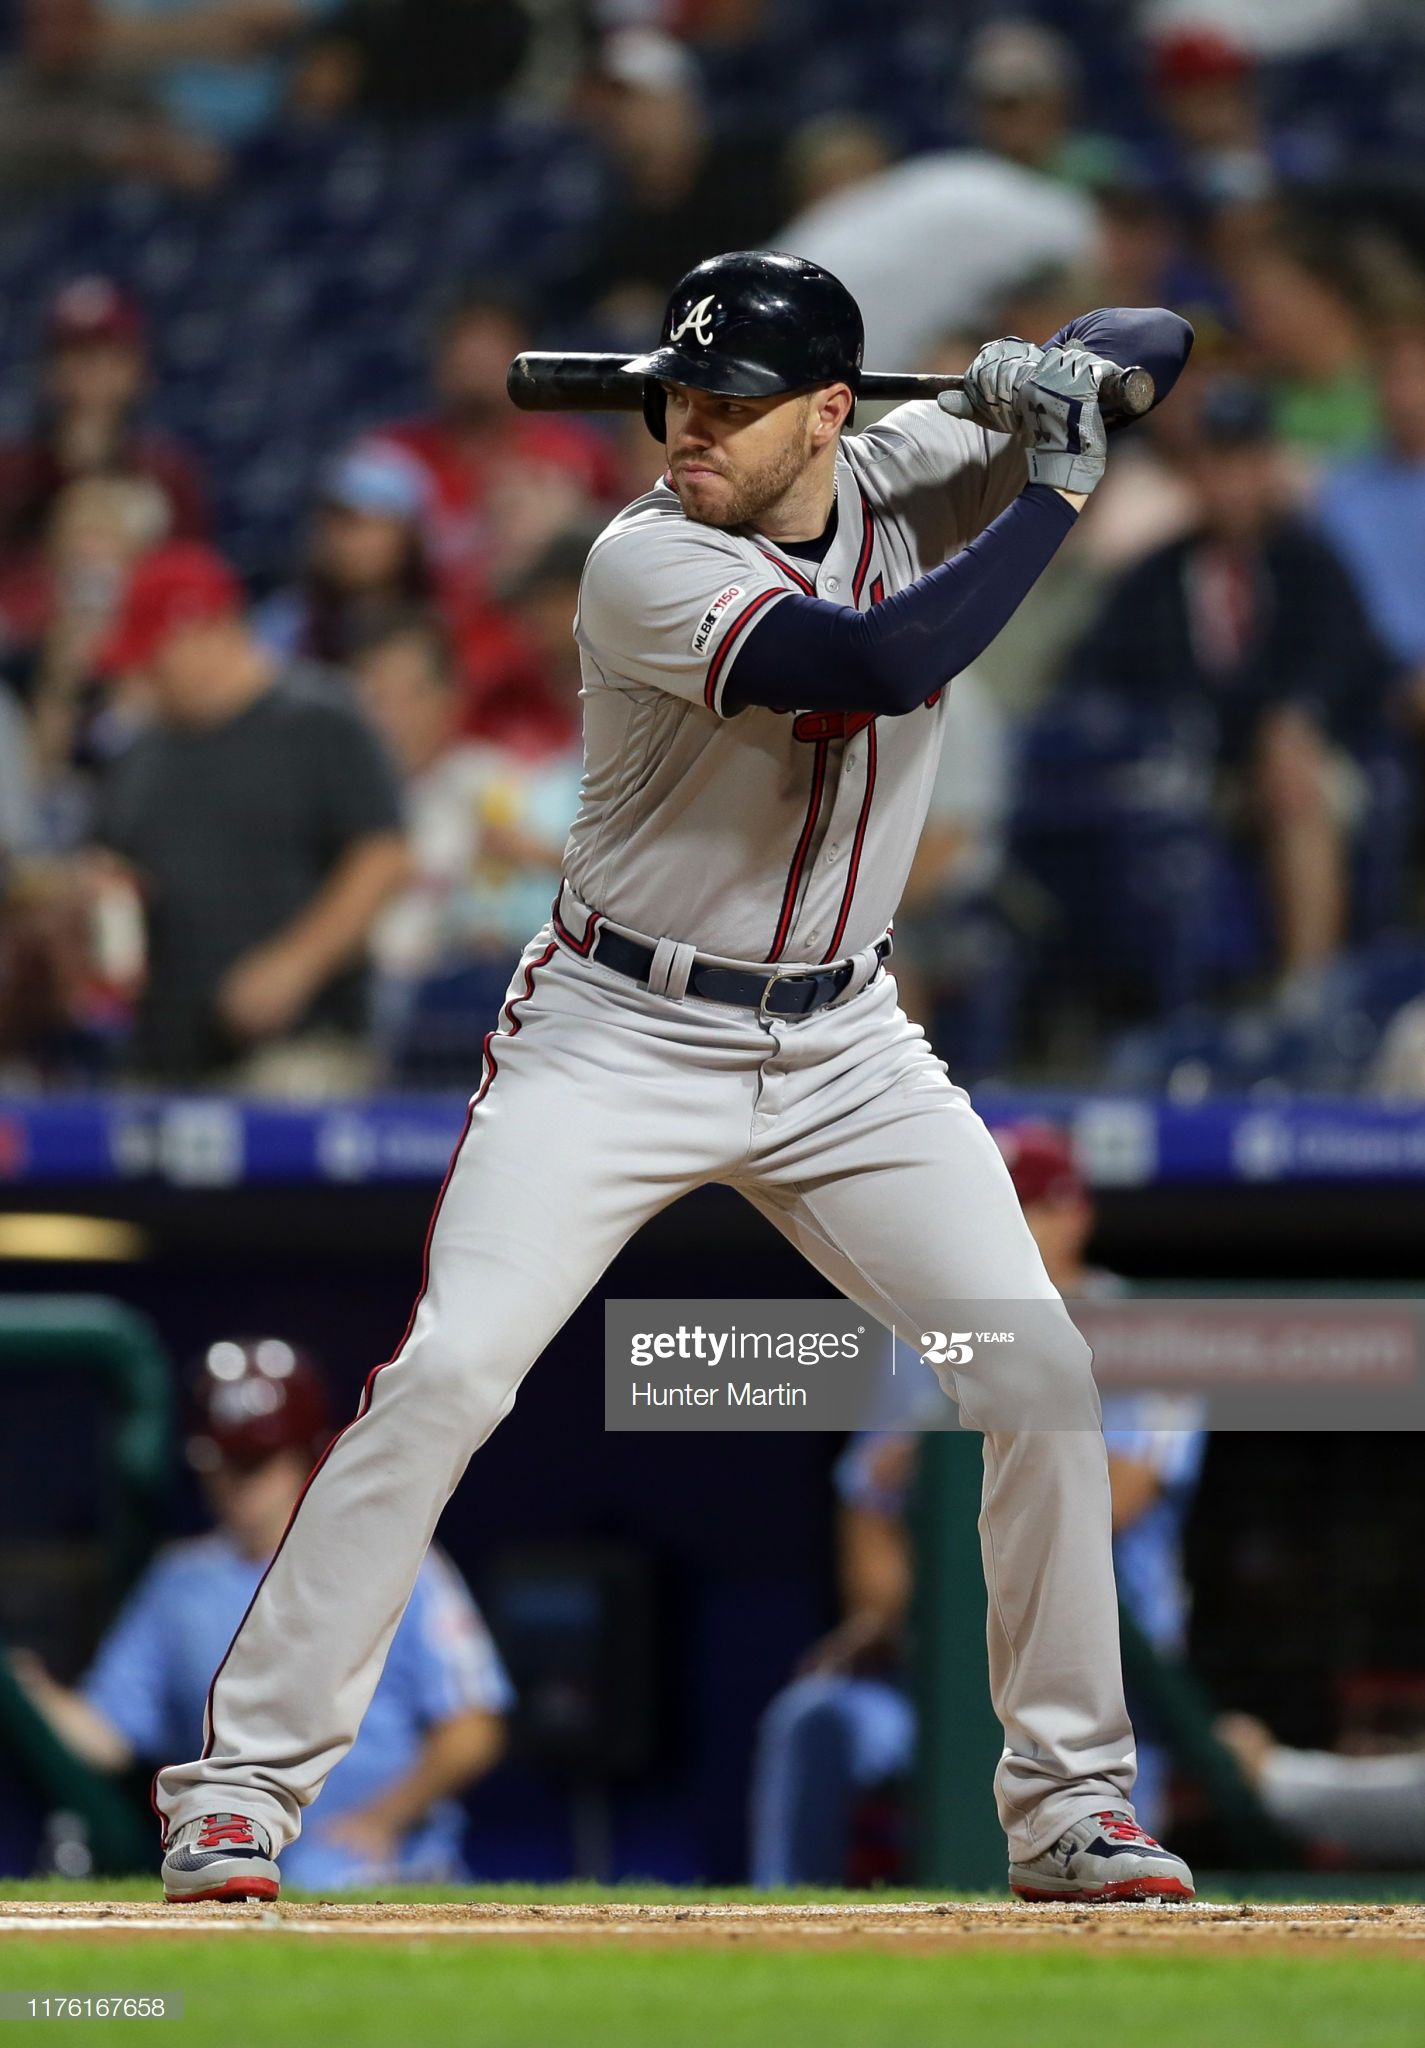 Freddie Freeman Of The Atlanta Braves Bats During A Game Against The In 2020 Atlanta Braves Braves Freeman